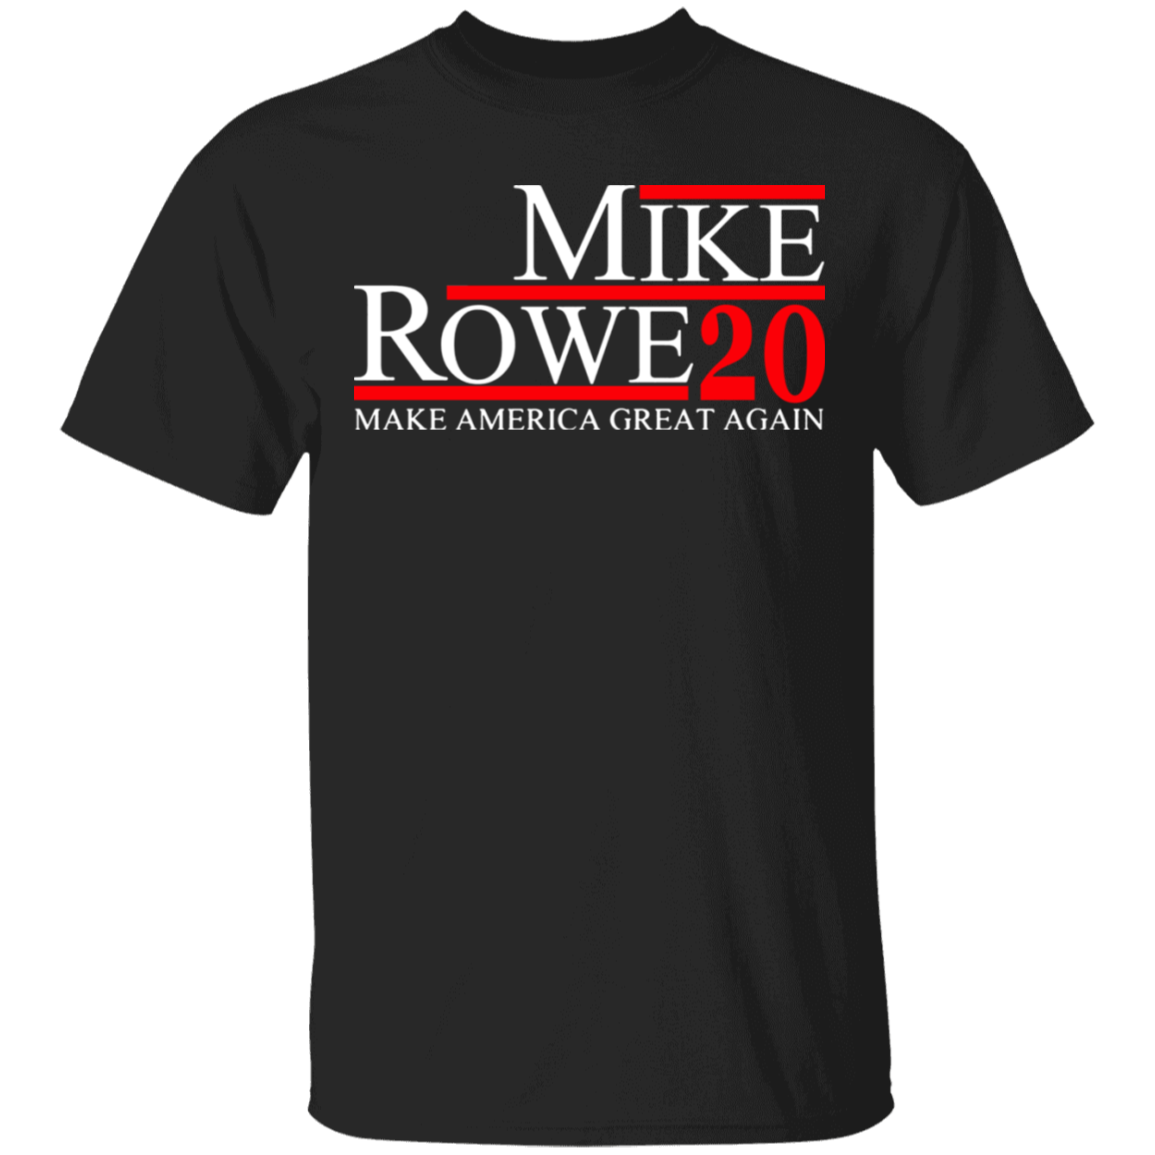 Mike Rowe 2020 Shirt Make America Great Again T-Shirt Mike Rowe For President